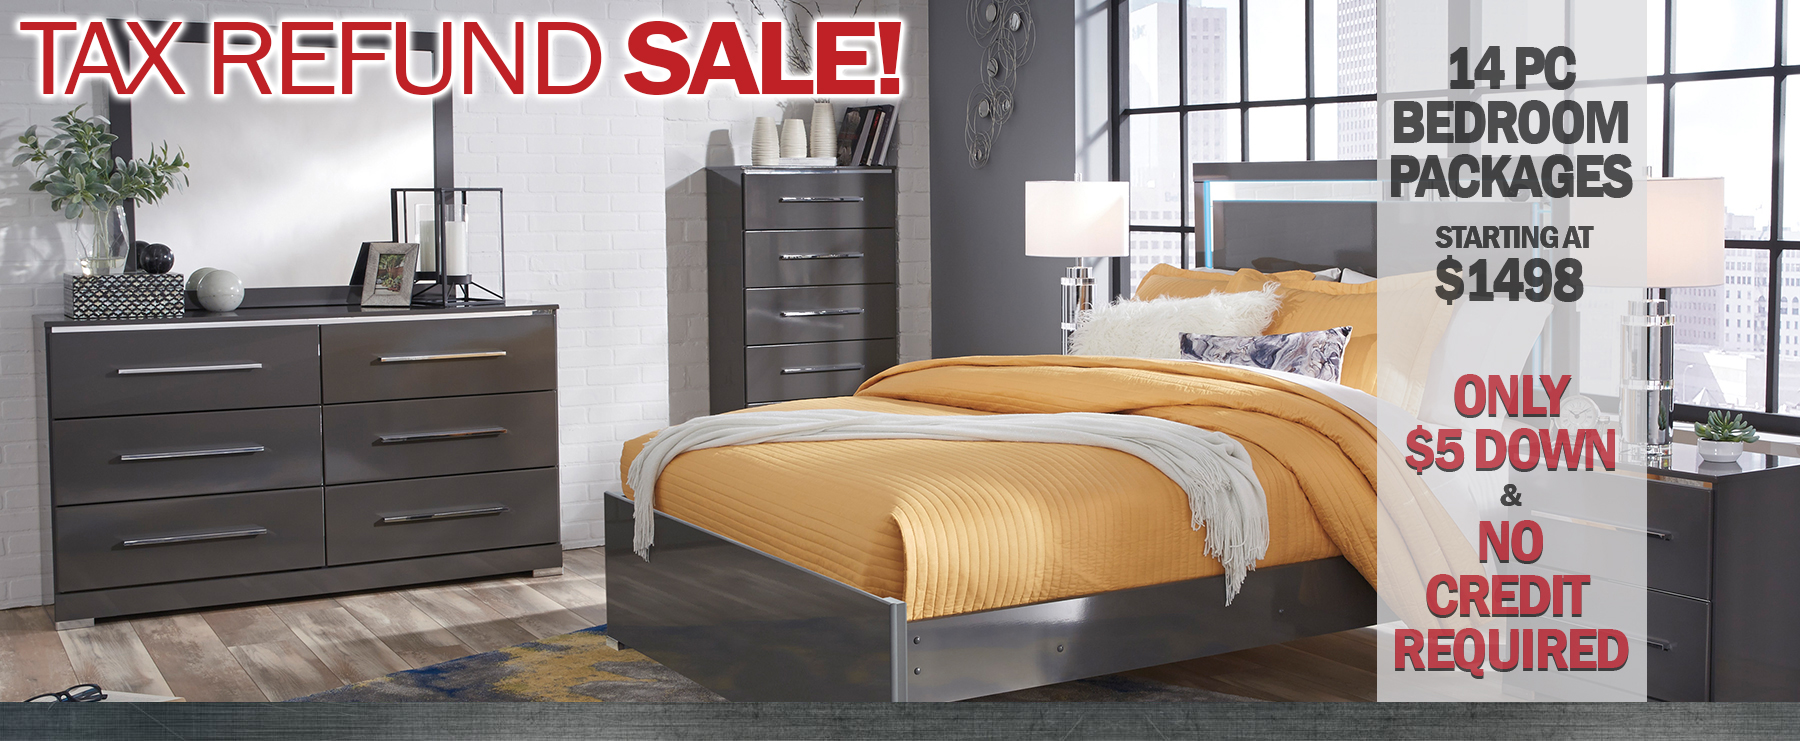 5th Avenue Furniture Fall Specials for Bedroom Packages